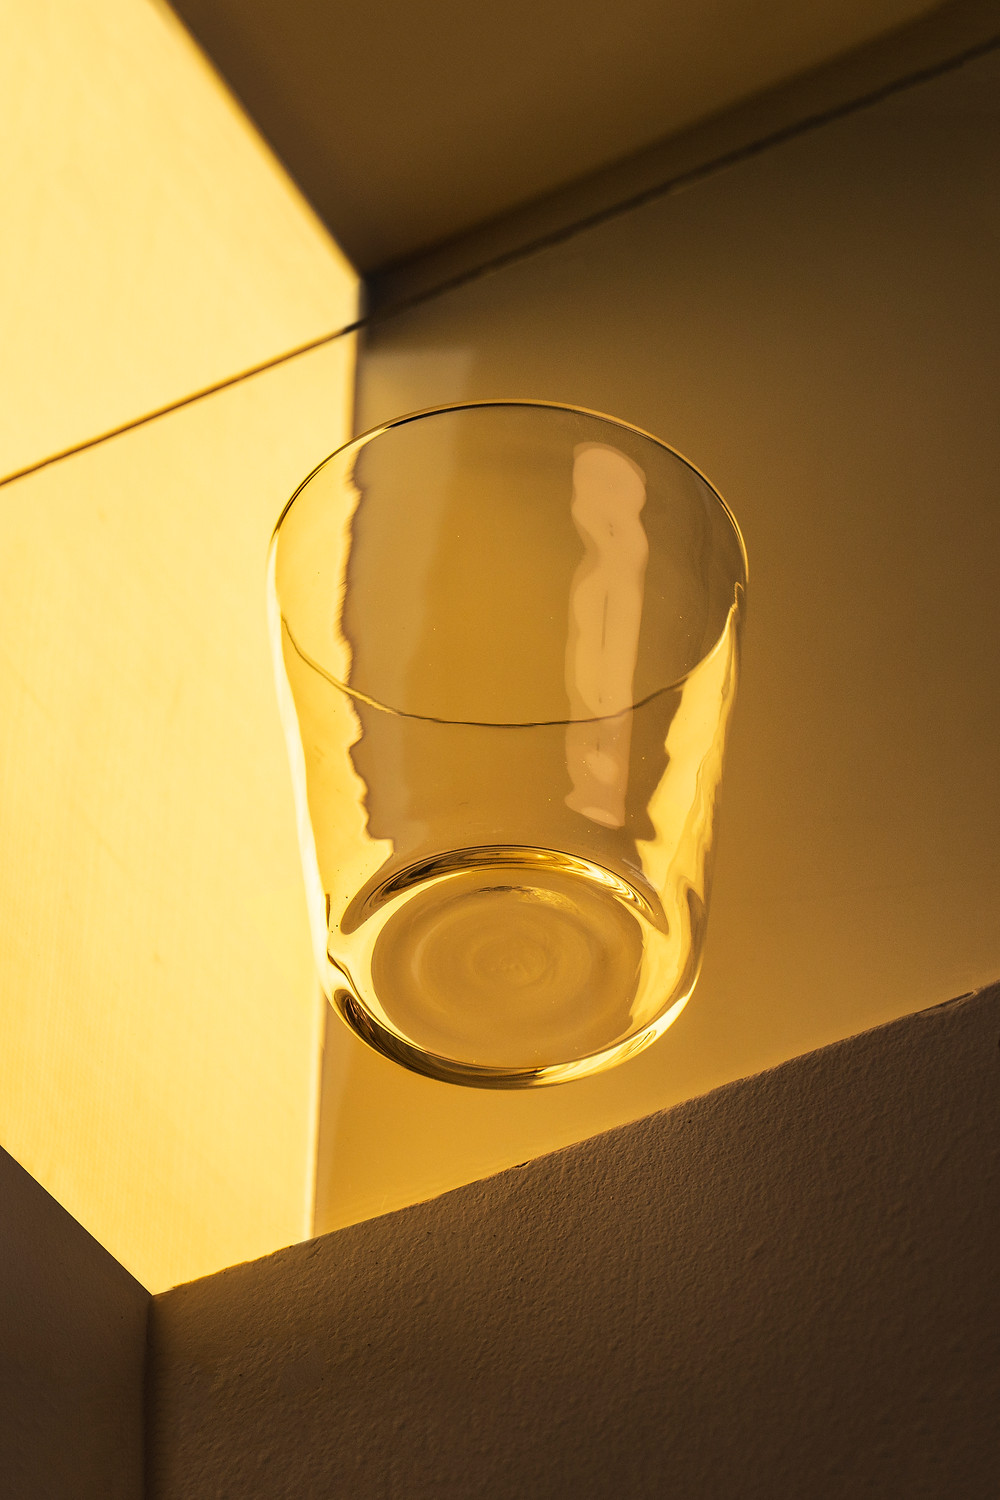 Clear drinking glass on amber background